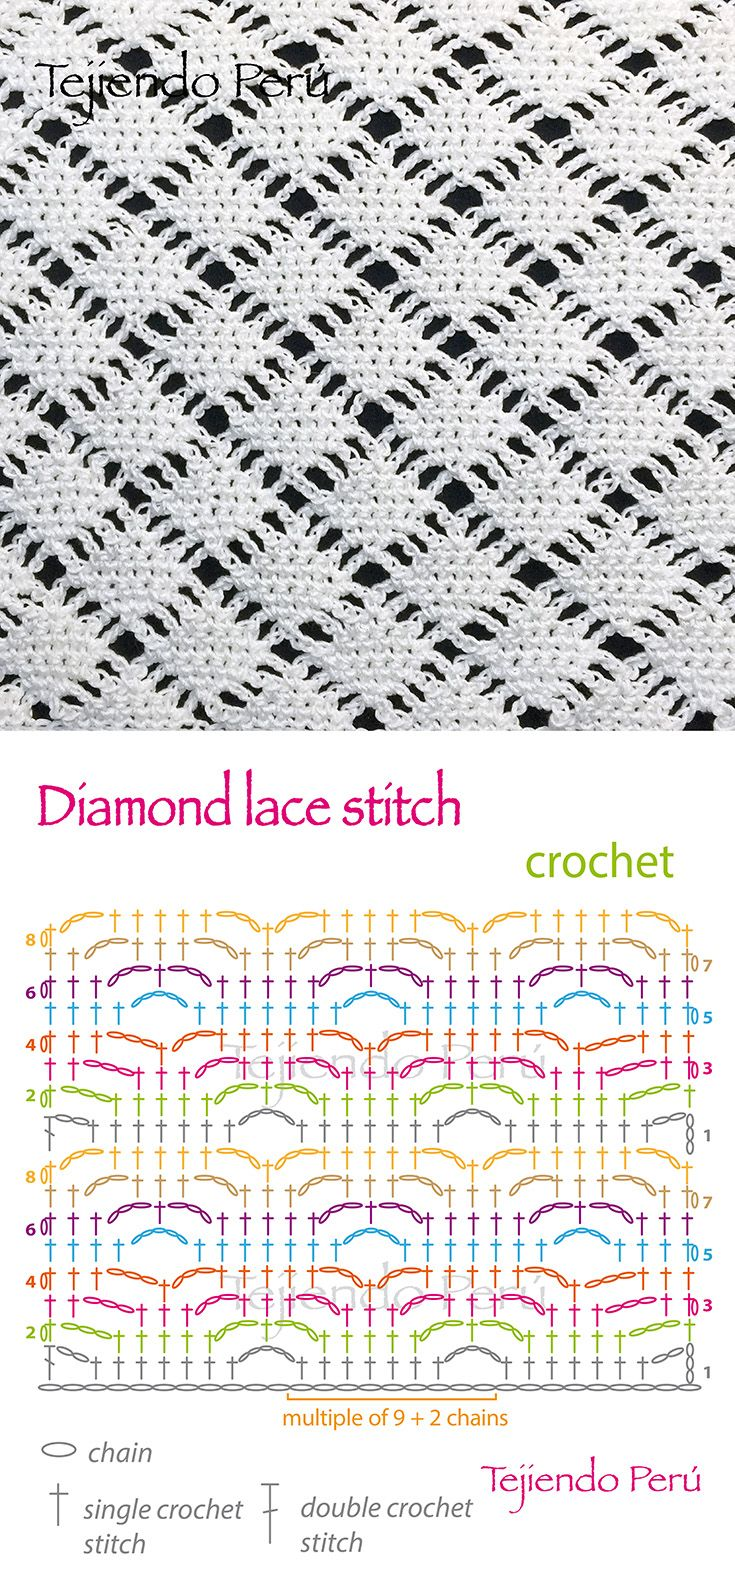 Crochet: diamond lace stitch diagram!